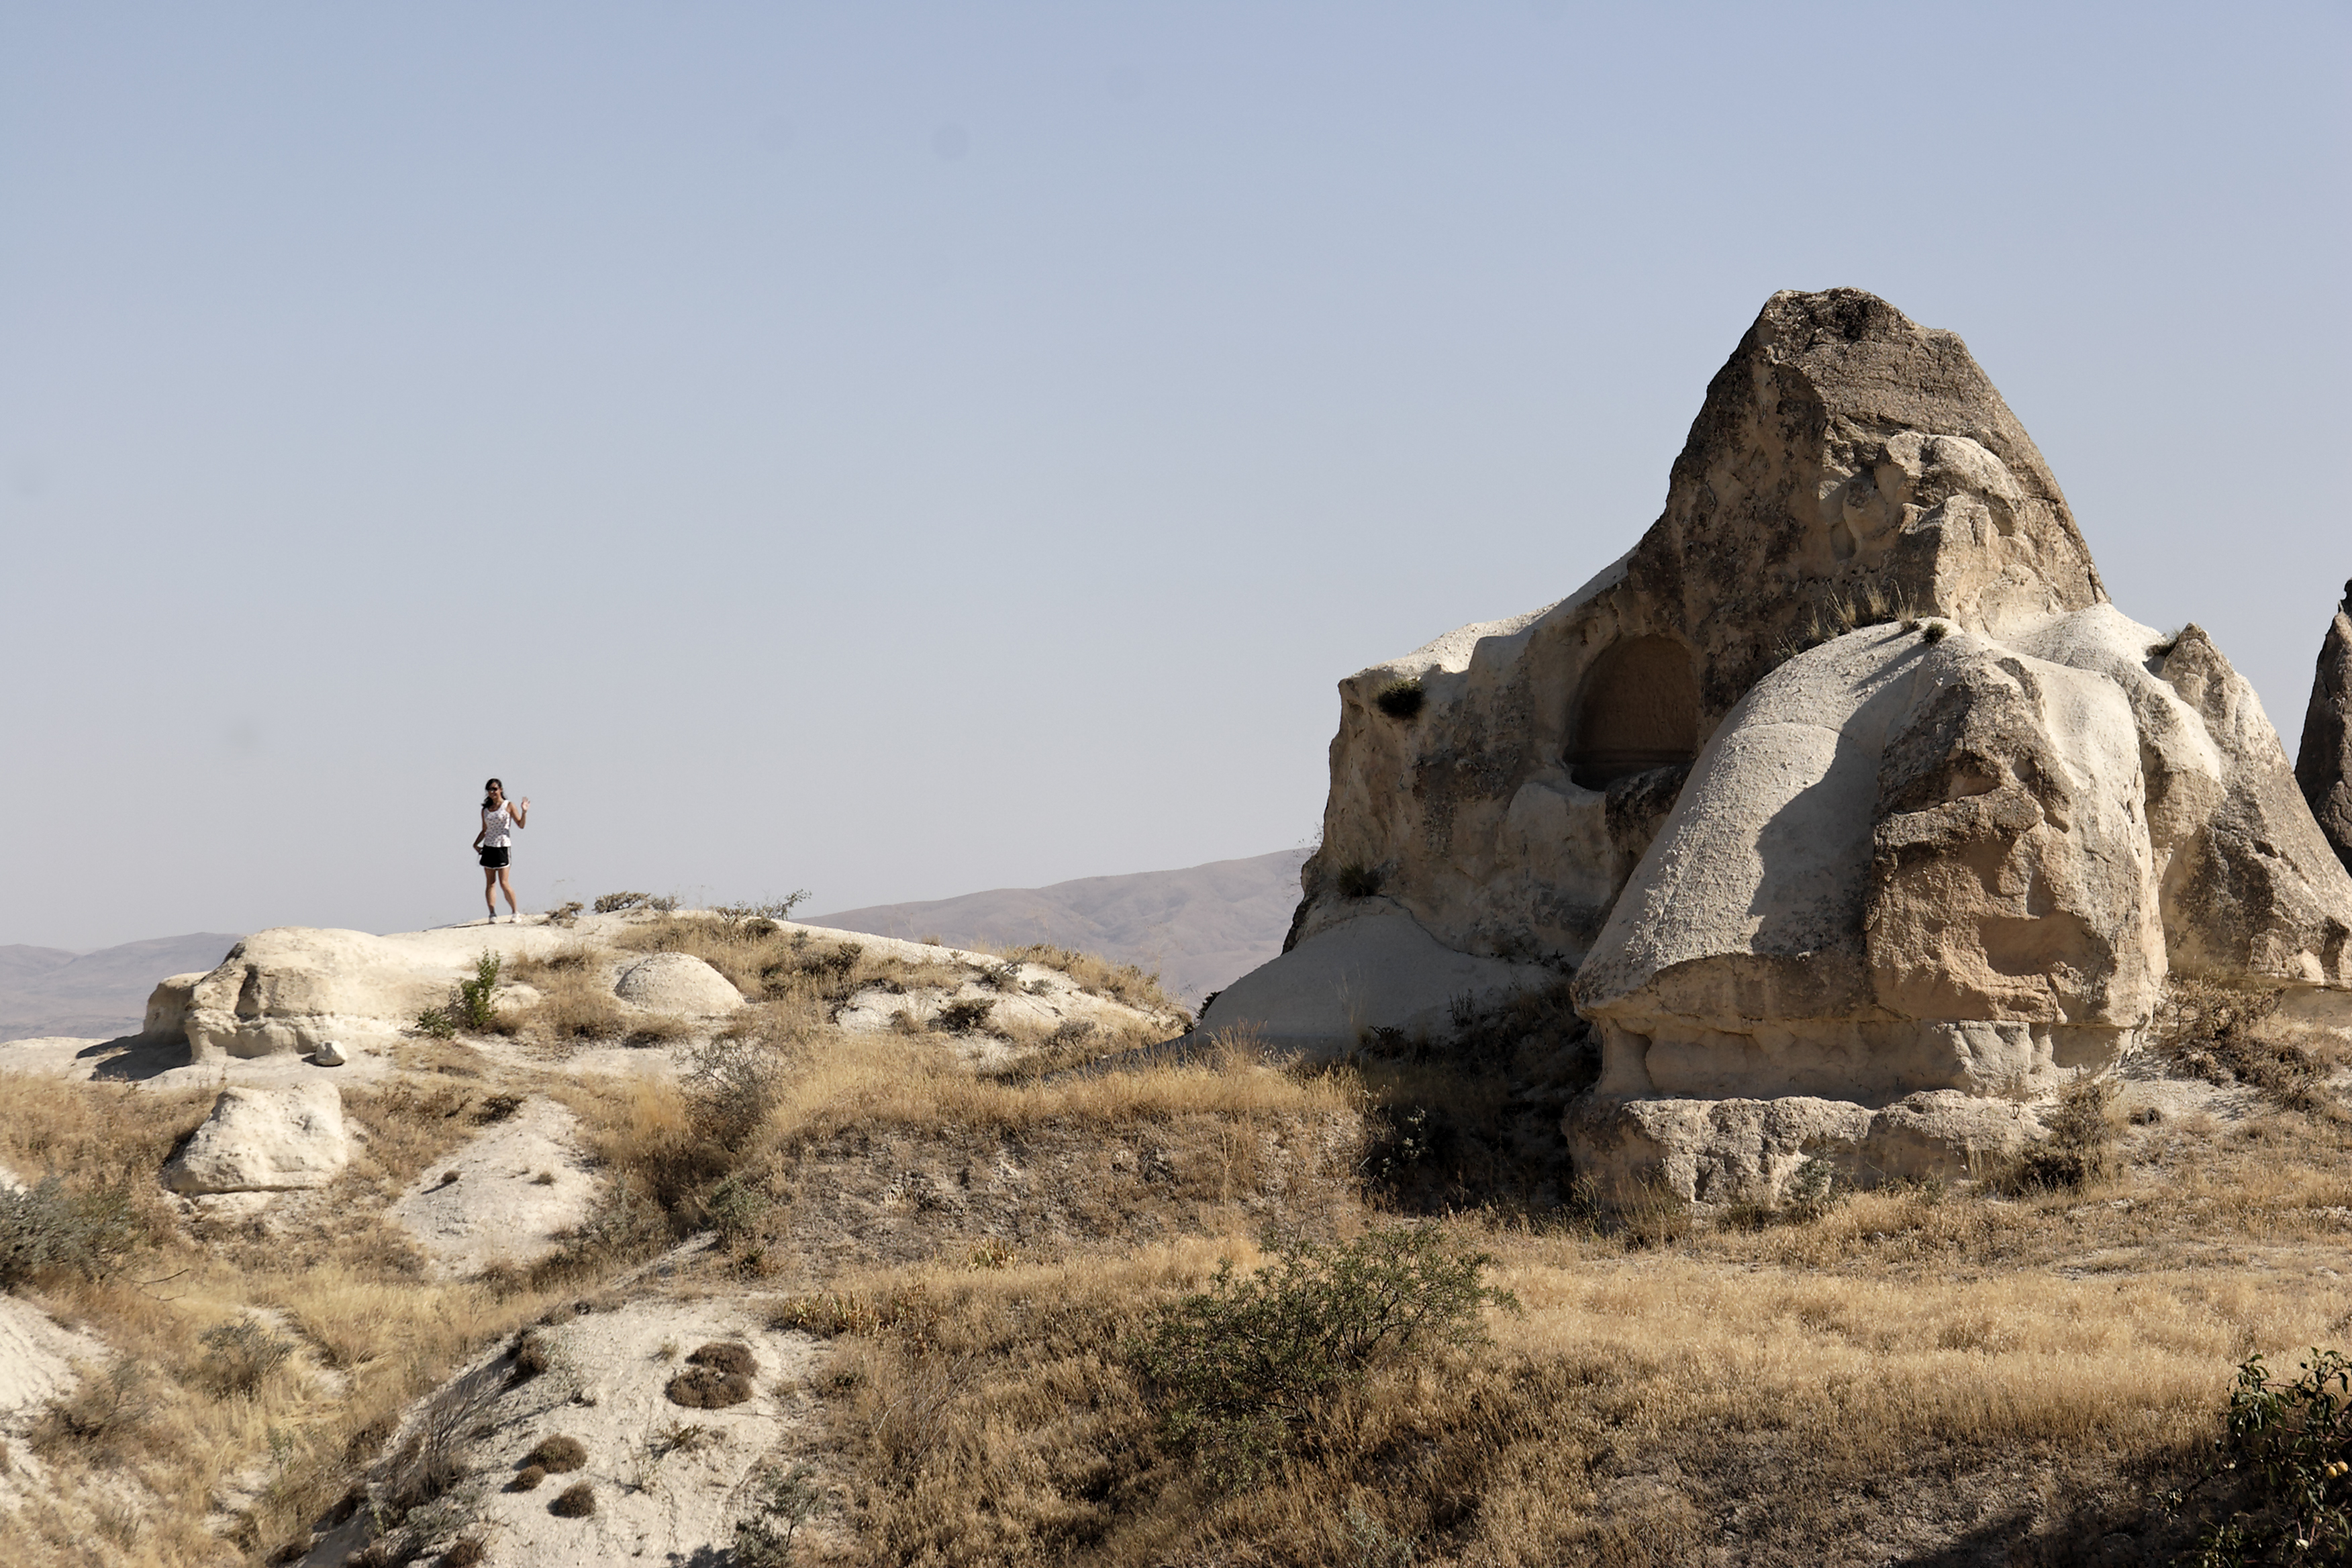 Fairy chimney rock formations, Goreme, Cappadocia Turkey 39.jpg - Goreme, Cappadocia, Turkey